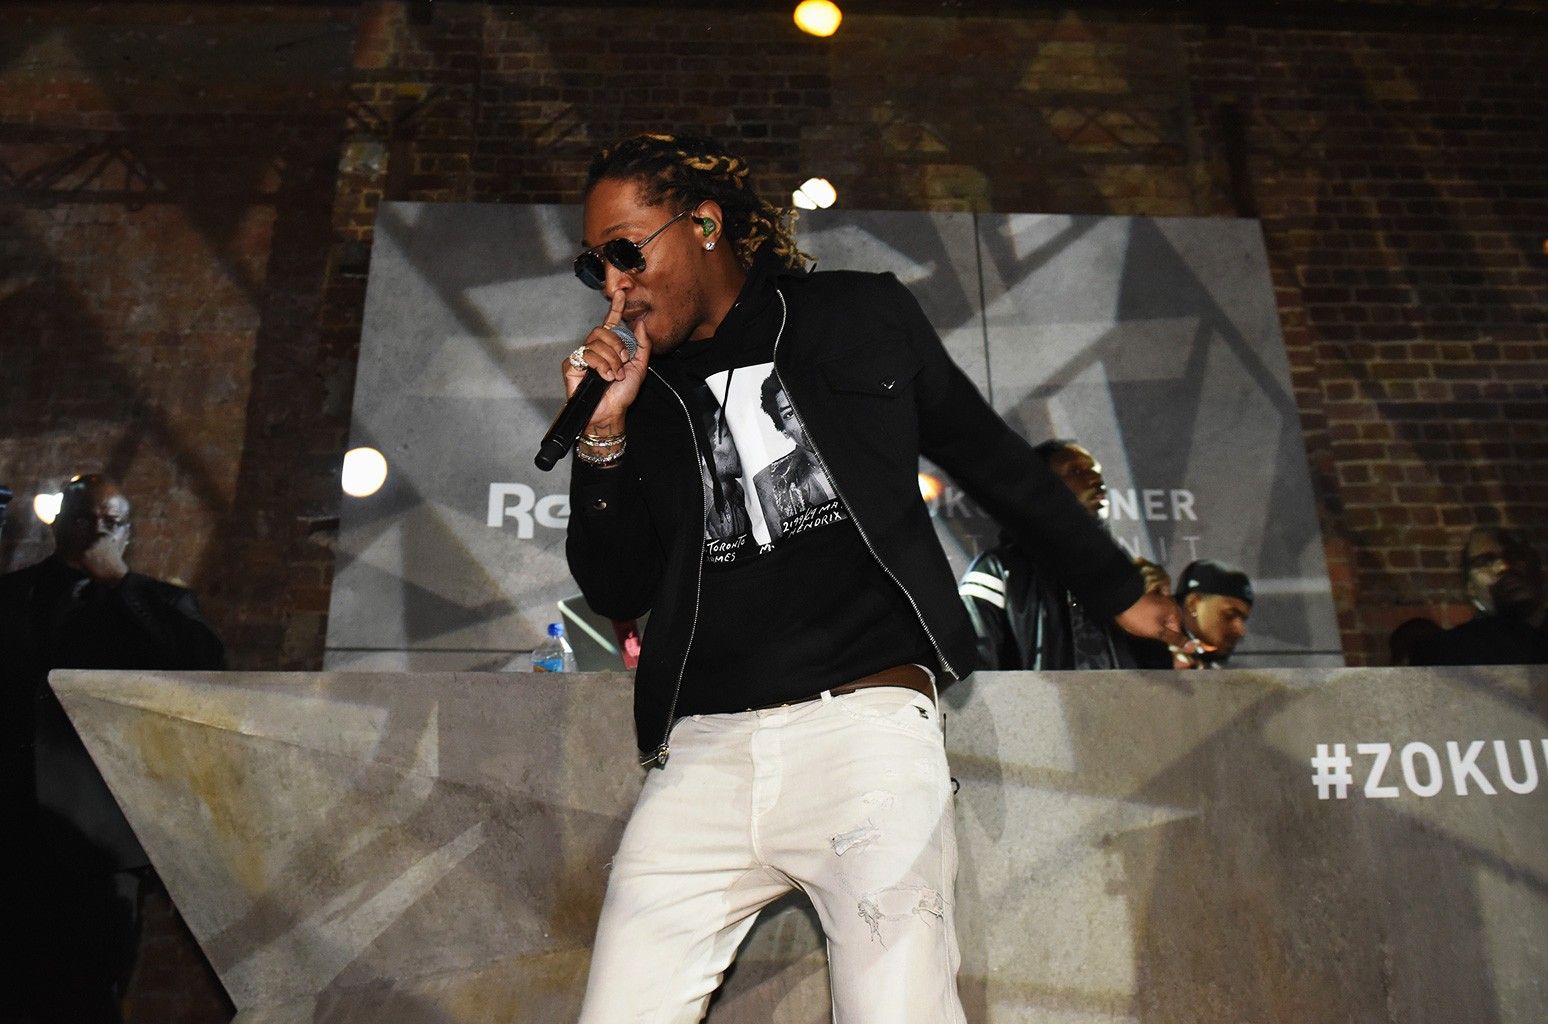 Future headlines at the global launch of Reebok Classics new Zoku Runner at Village Underground on March 2, 2017 in London, England.